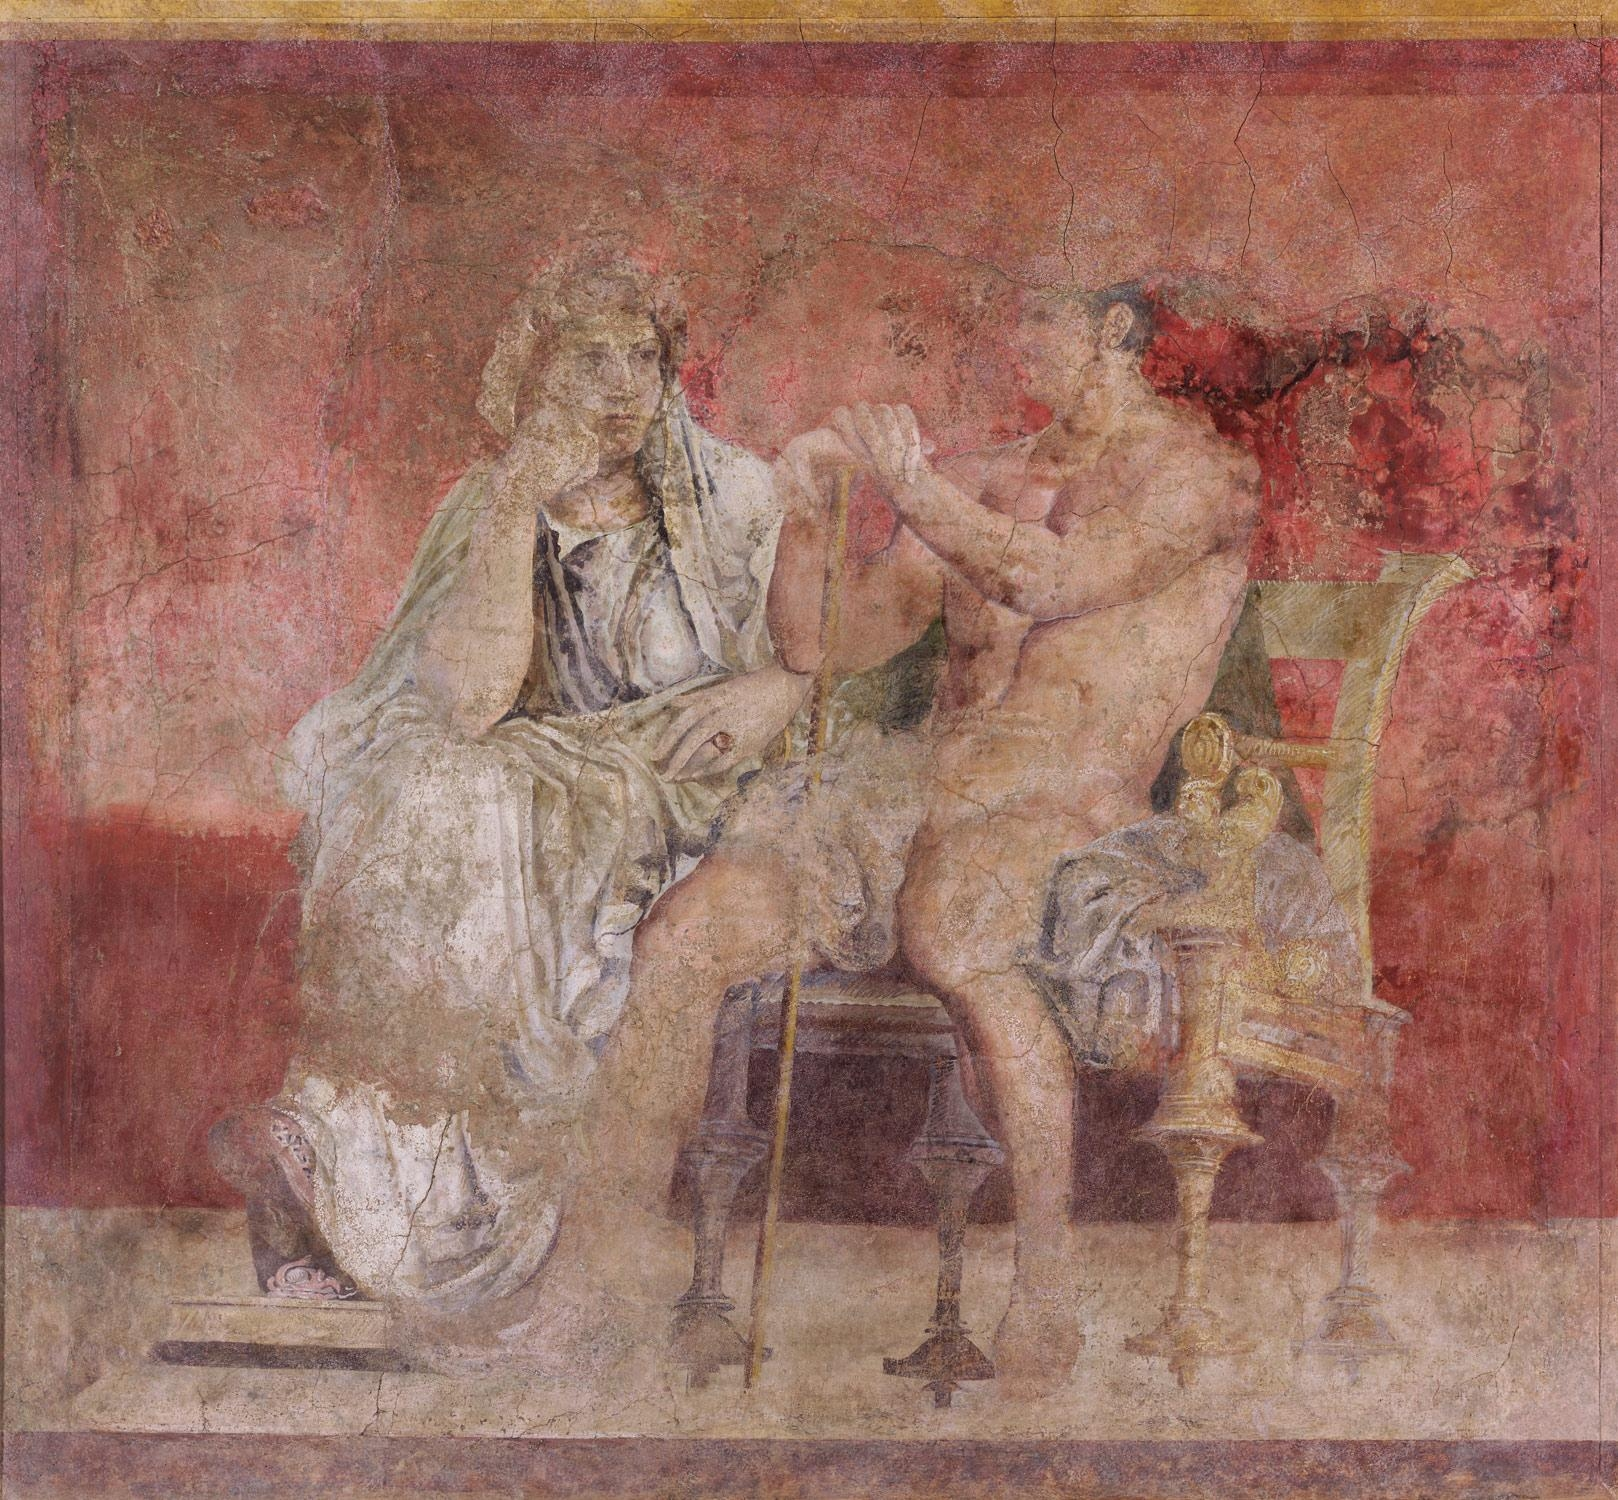 Wall Painting From Room H Of The Villa Of P (Image 19 of 20)